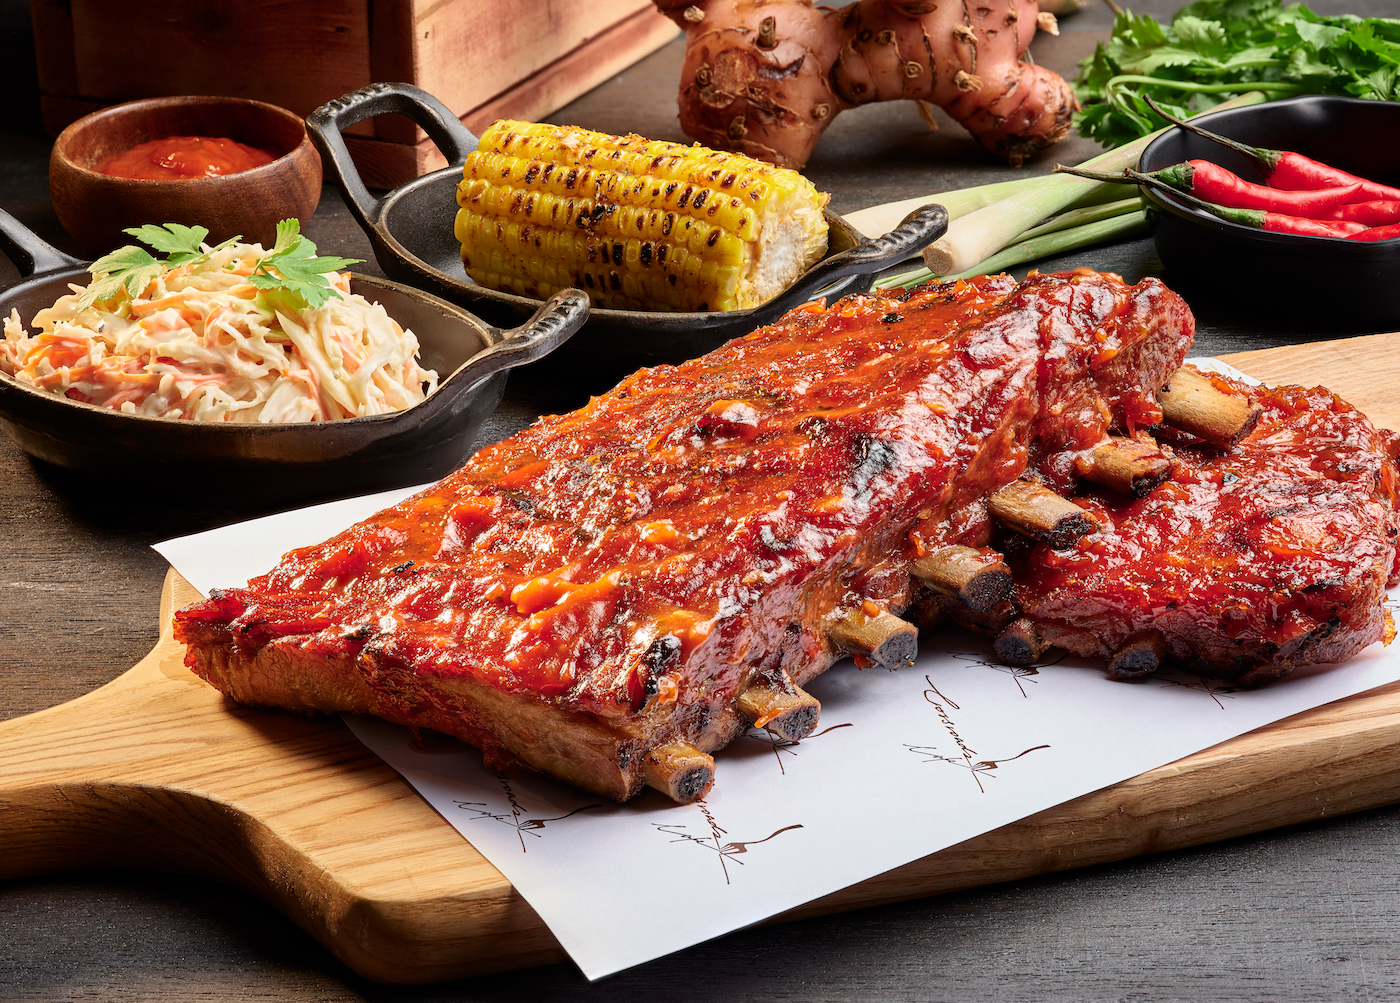 Baby back ribs at Crossroads Cafe | Things to do in July 2019